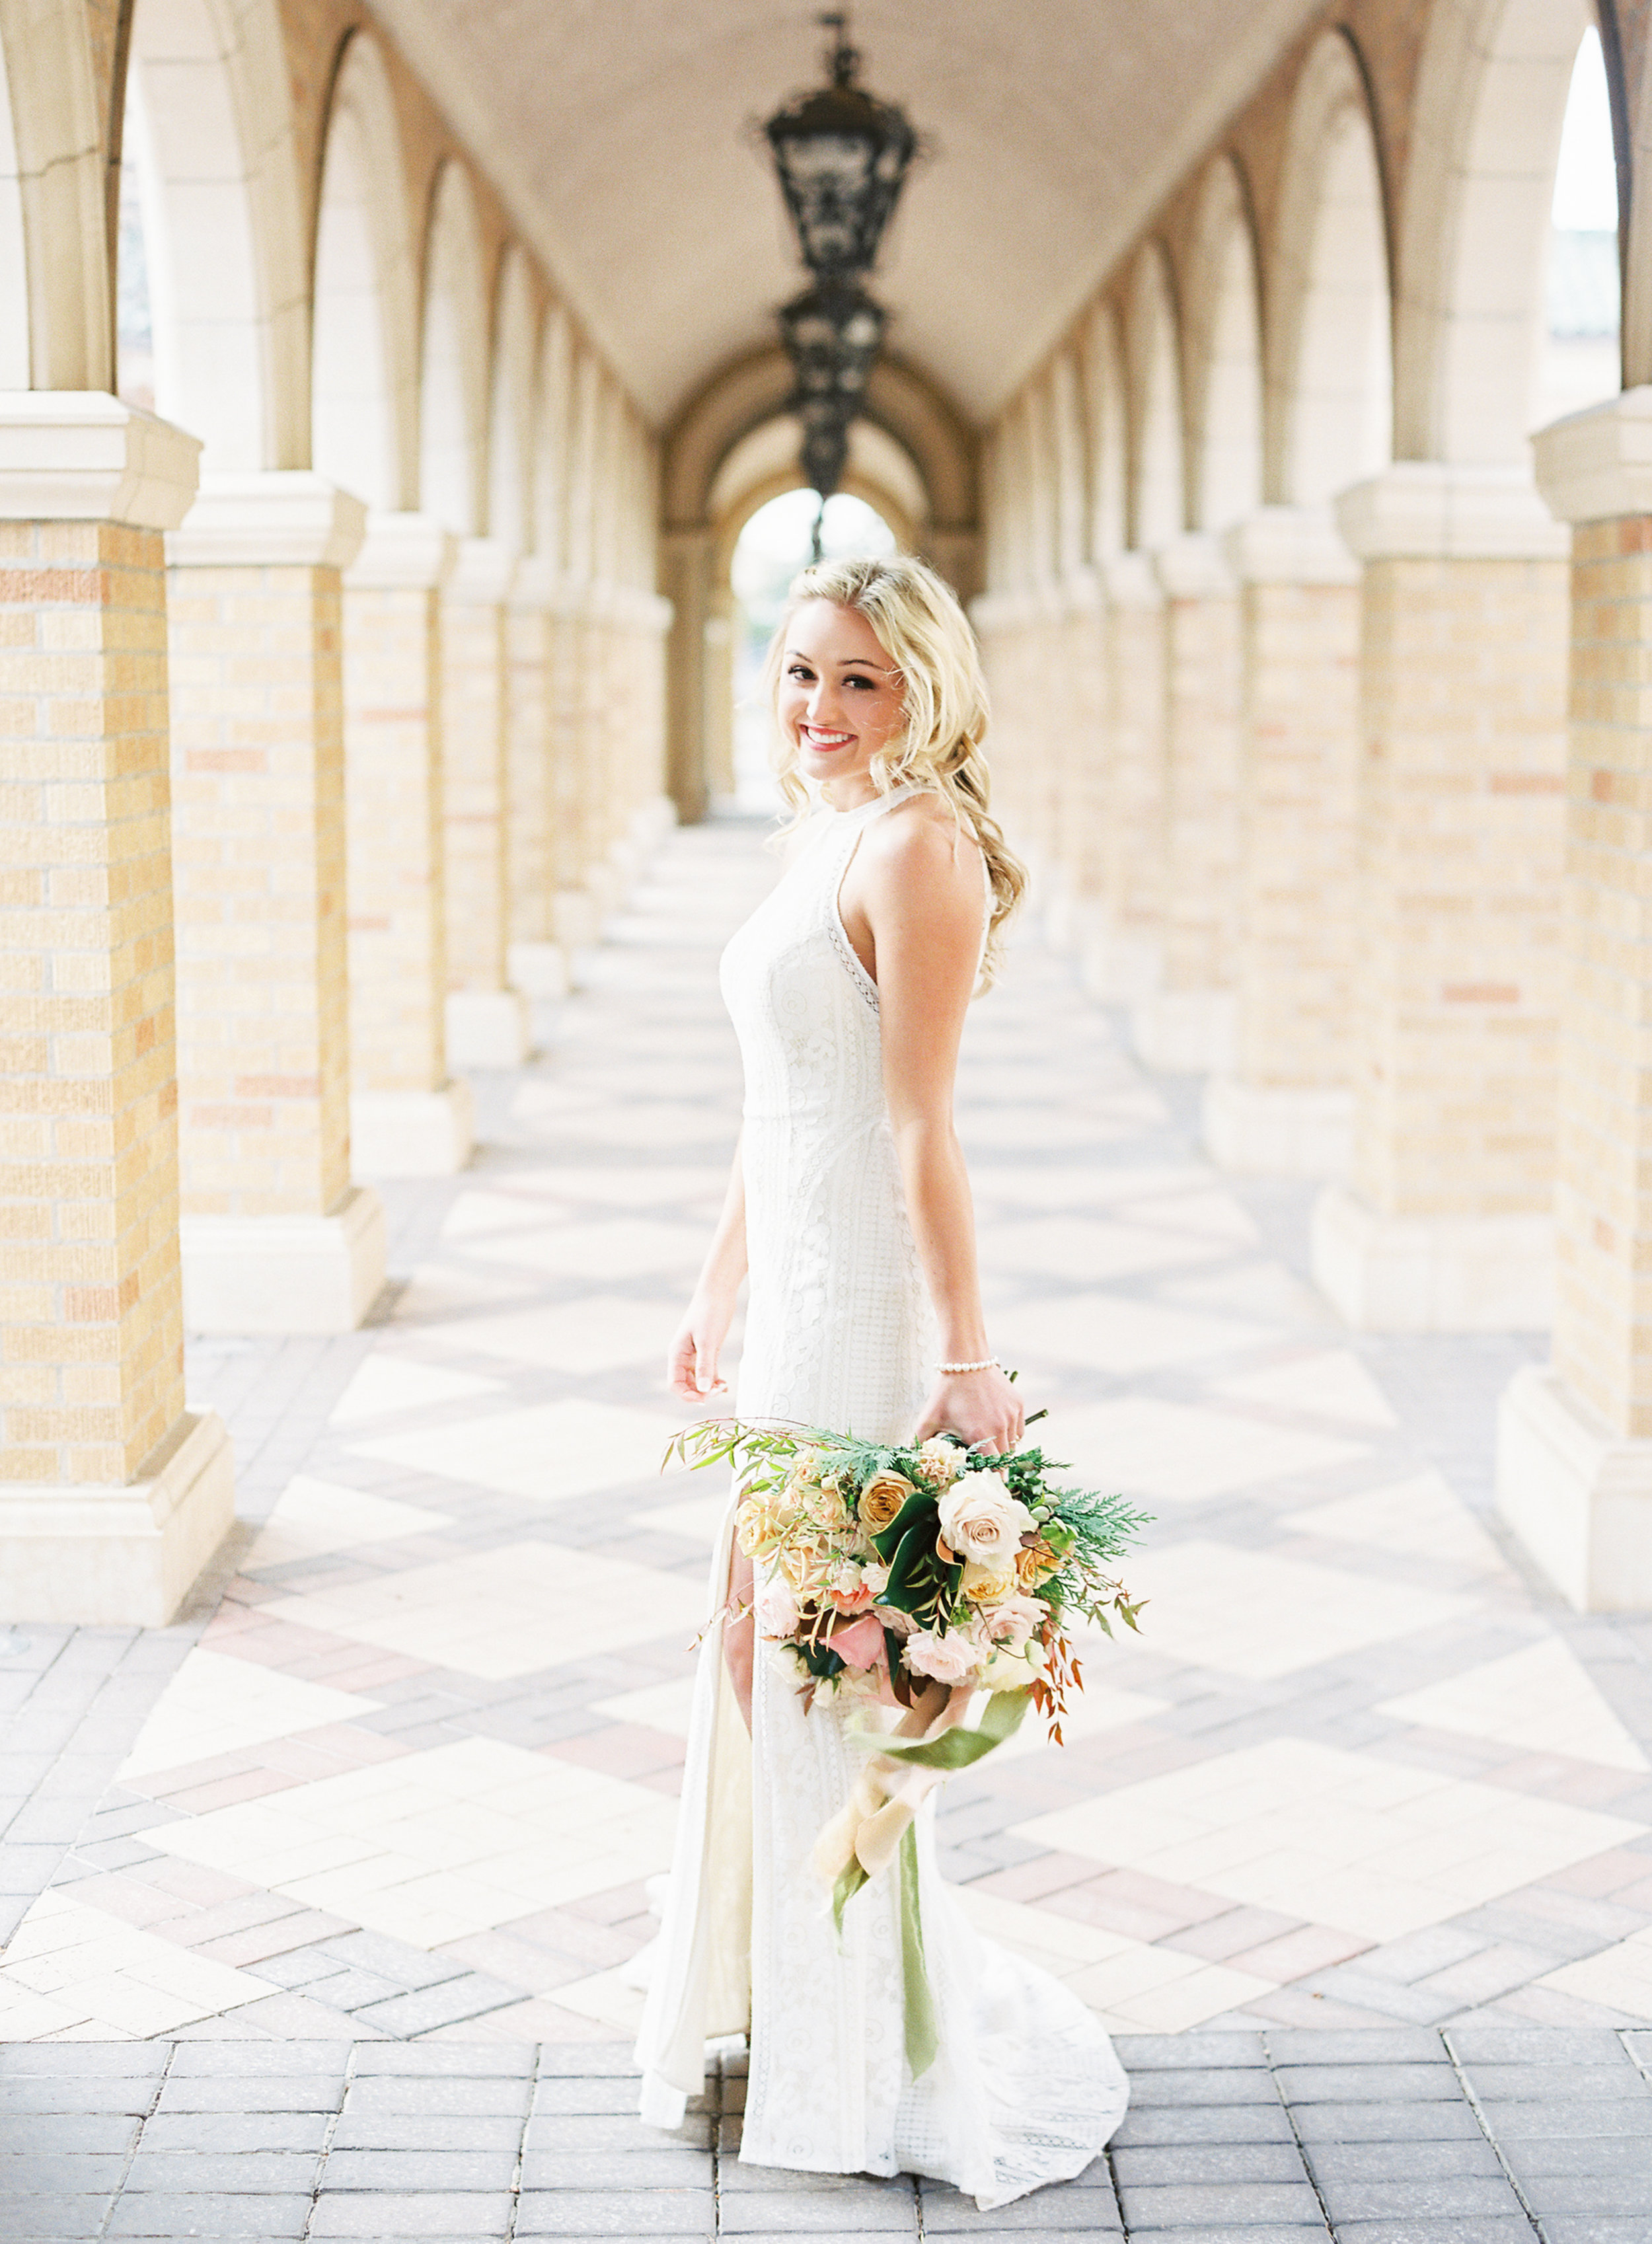 JoAnna_Robertson_Photography_KLEIN_WED-89.jpg